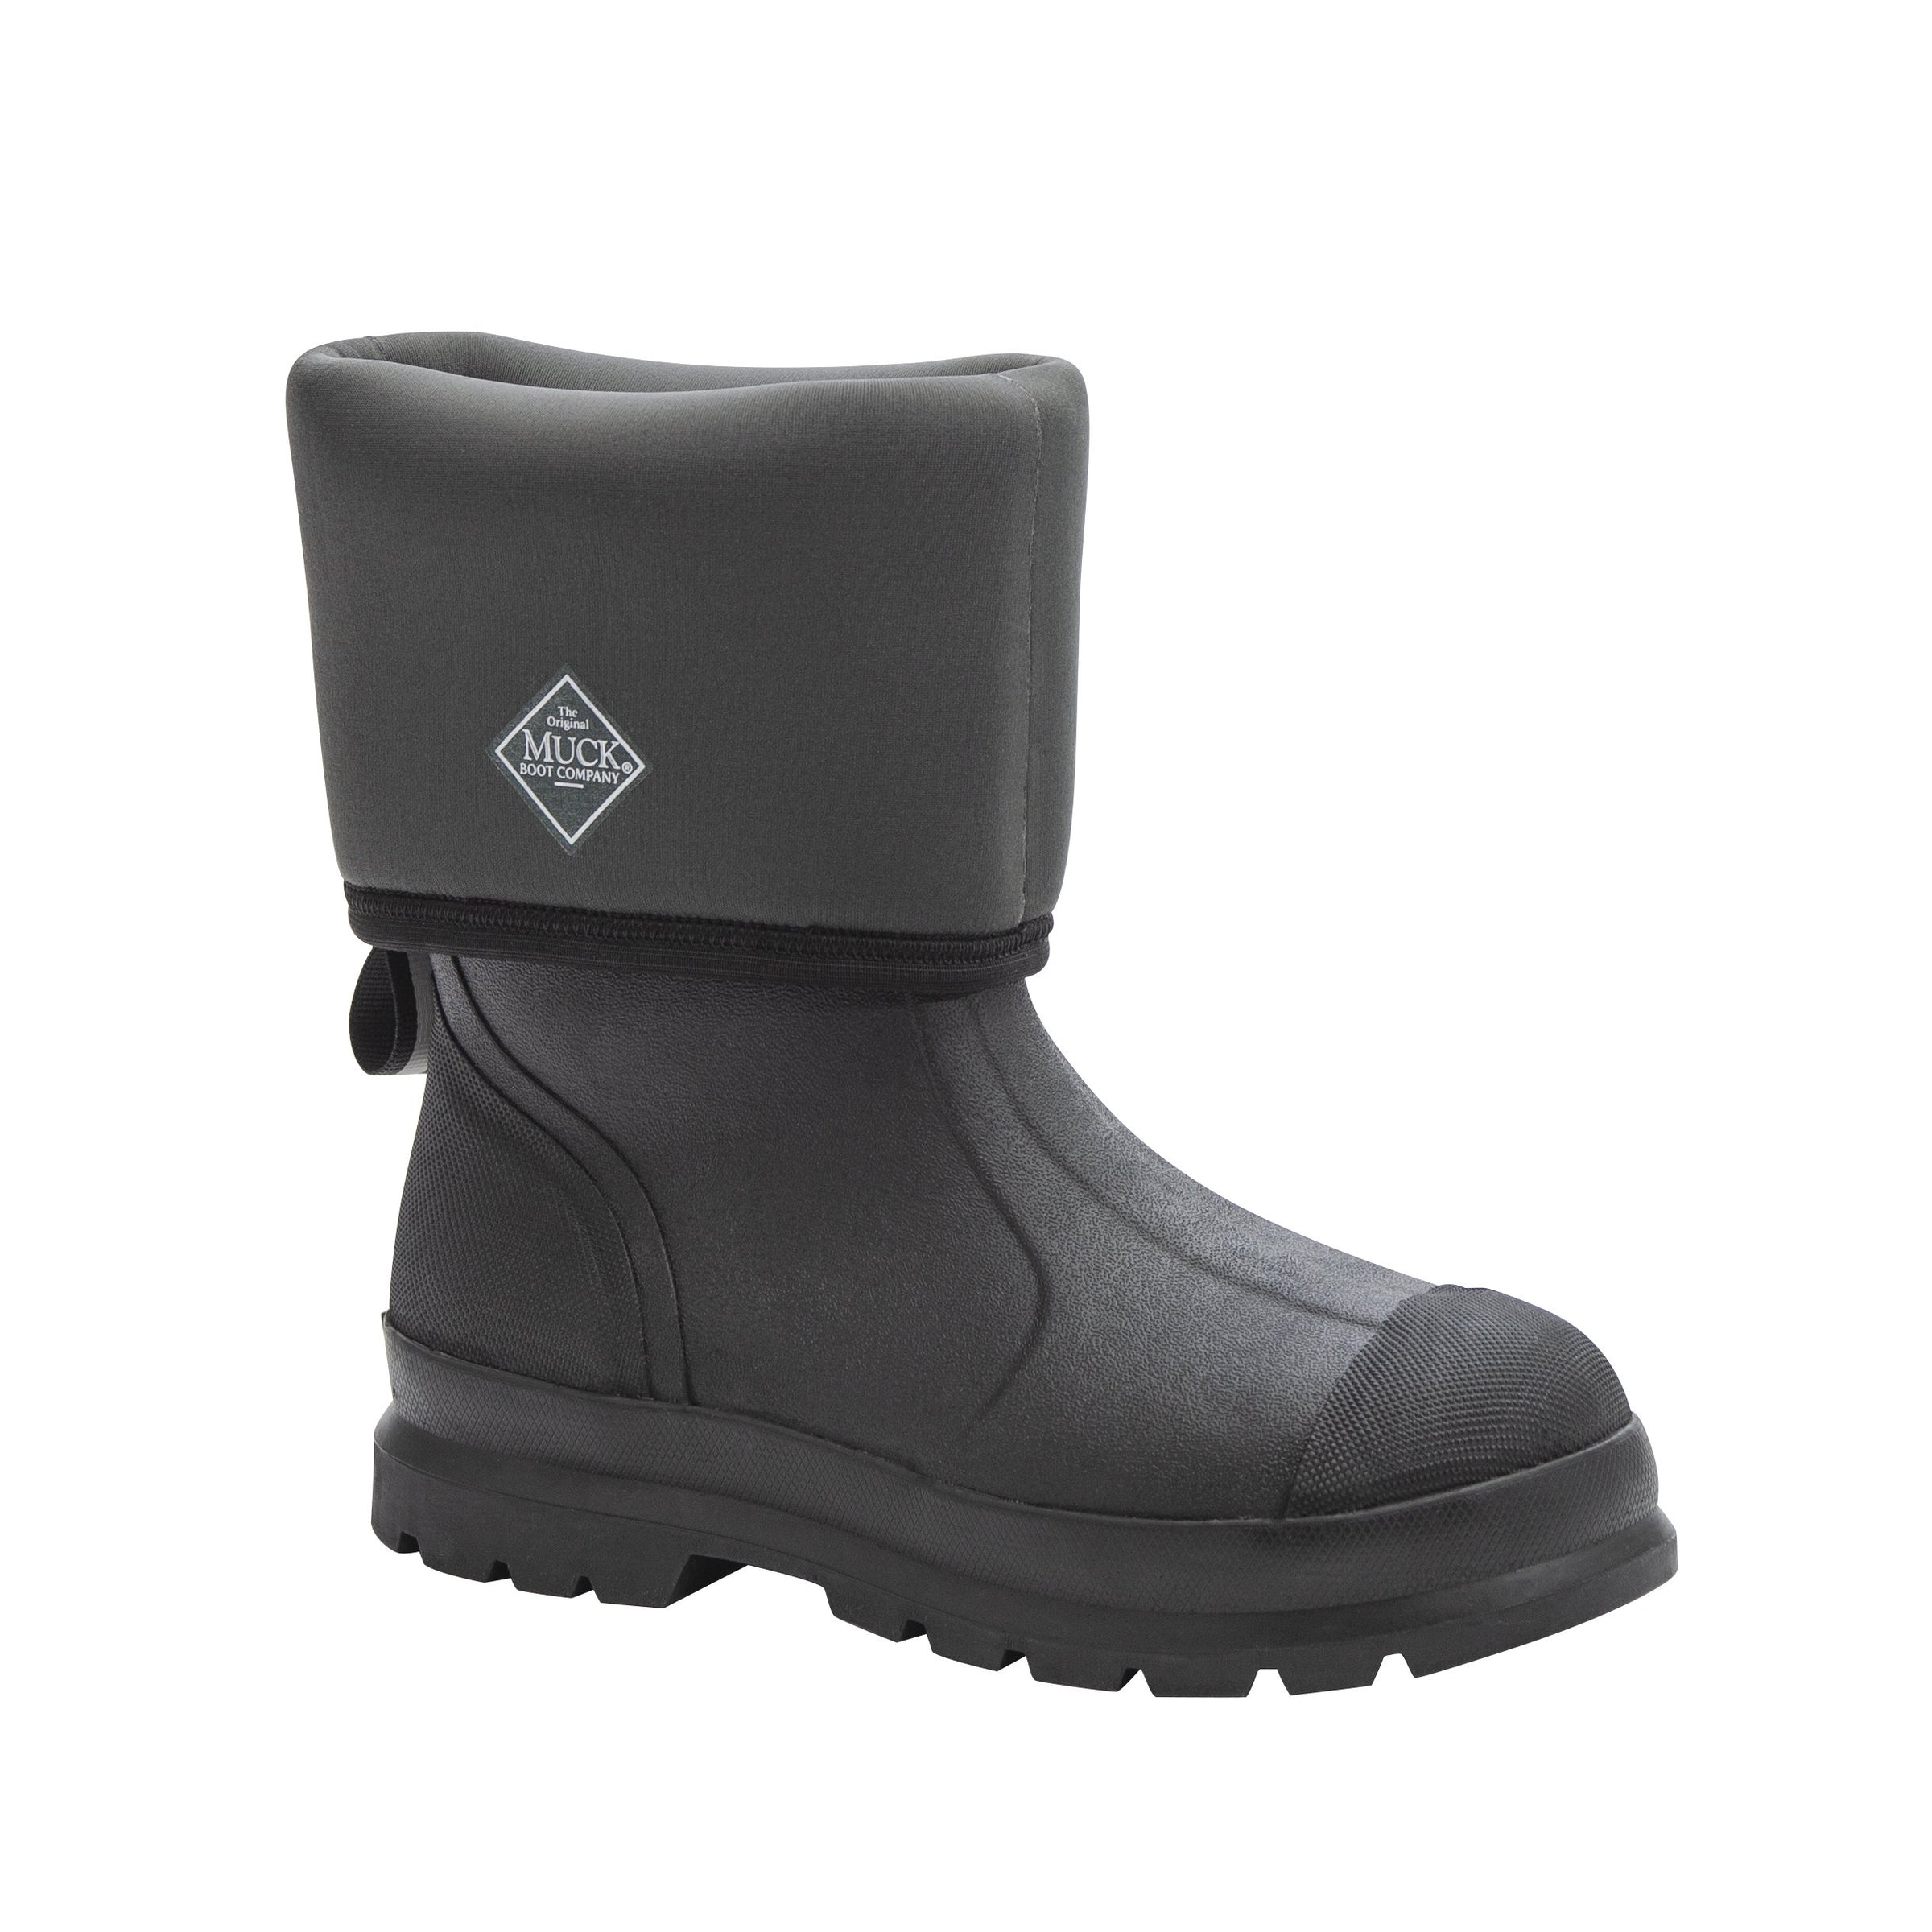 c71e06bd125 Men's Chore Hi | The Original Muck Boot Company™ USA